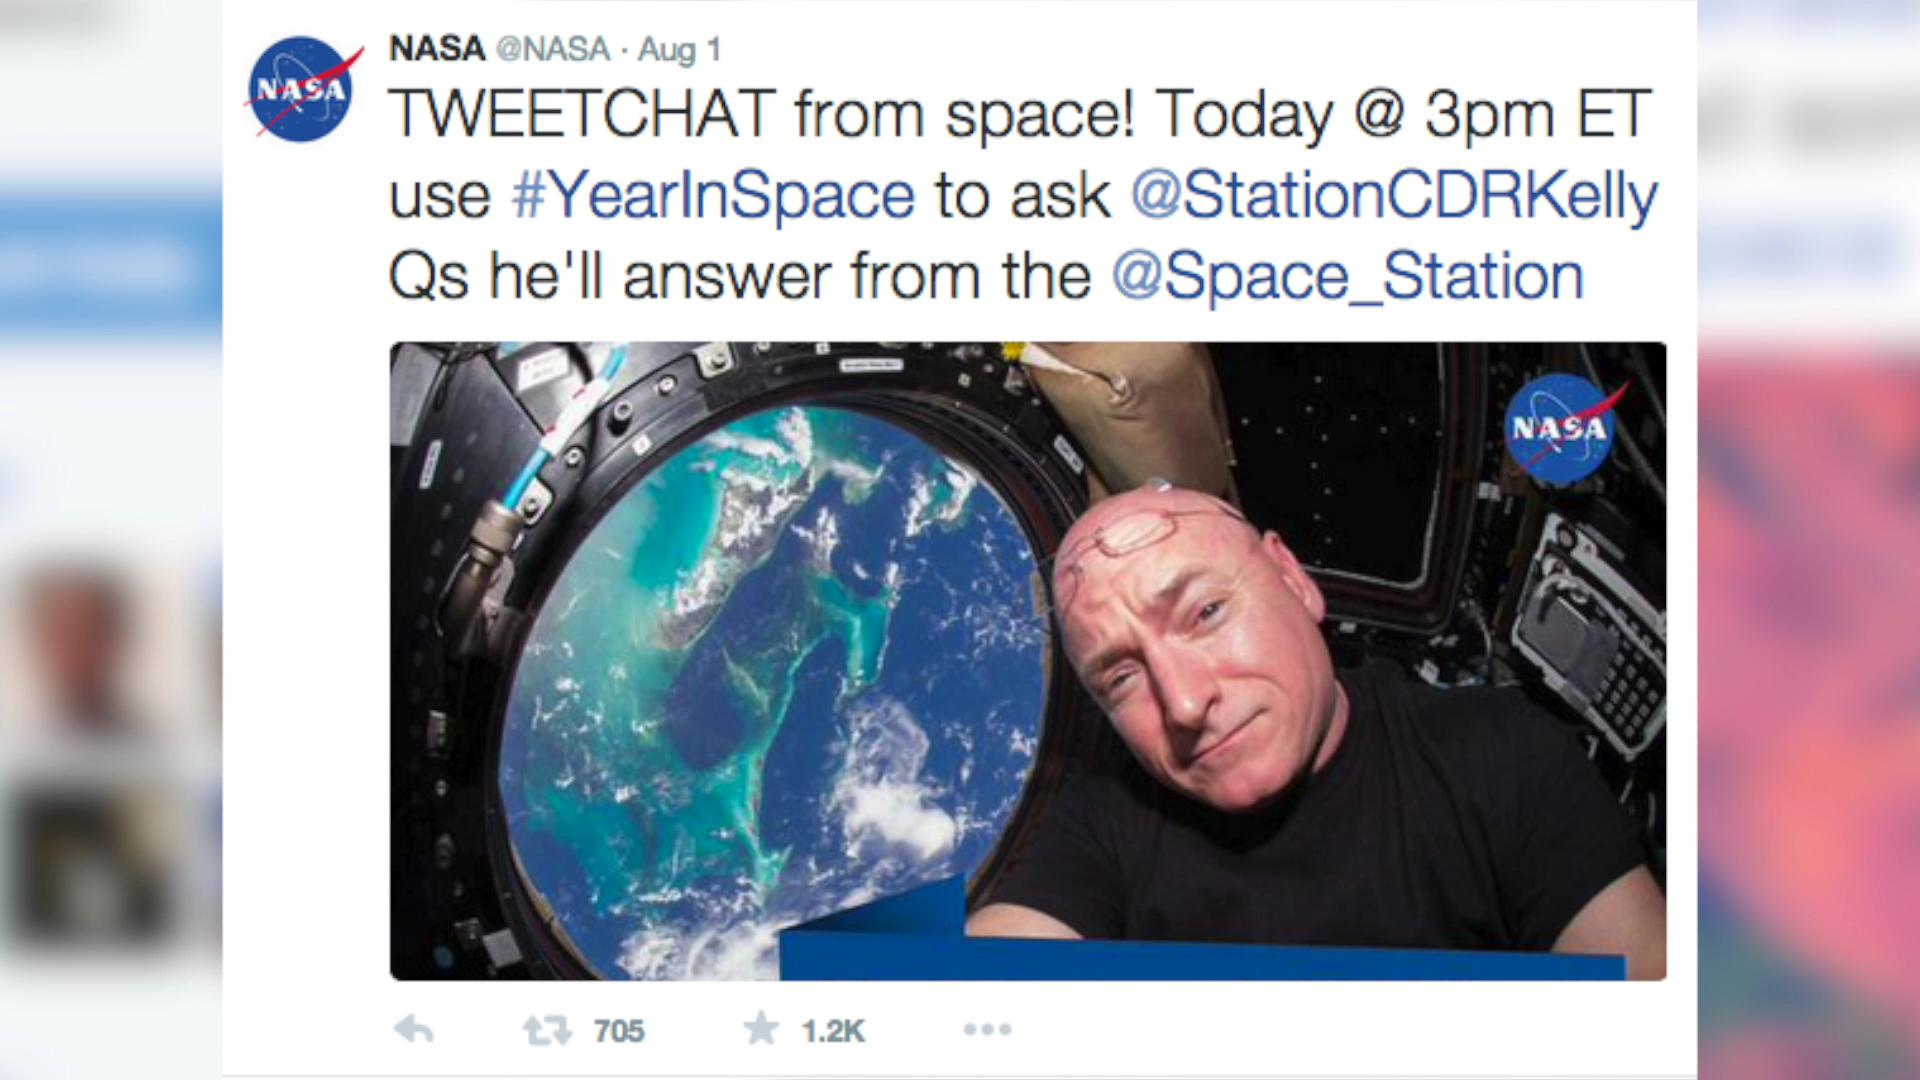 Even President Obama can't resist the first Twitter chat from space